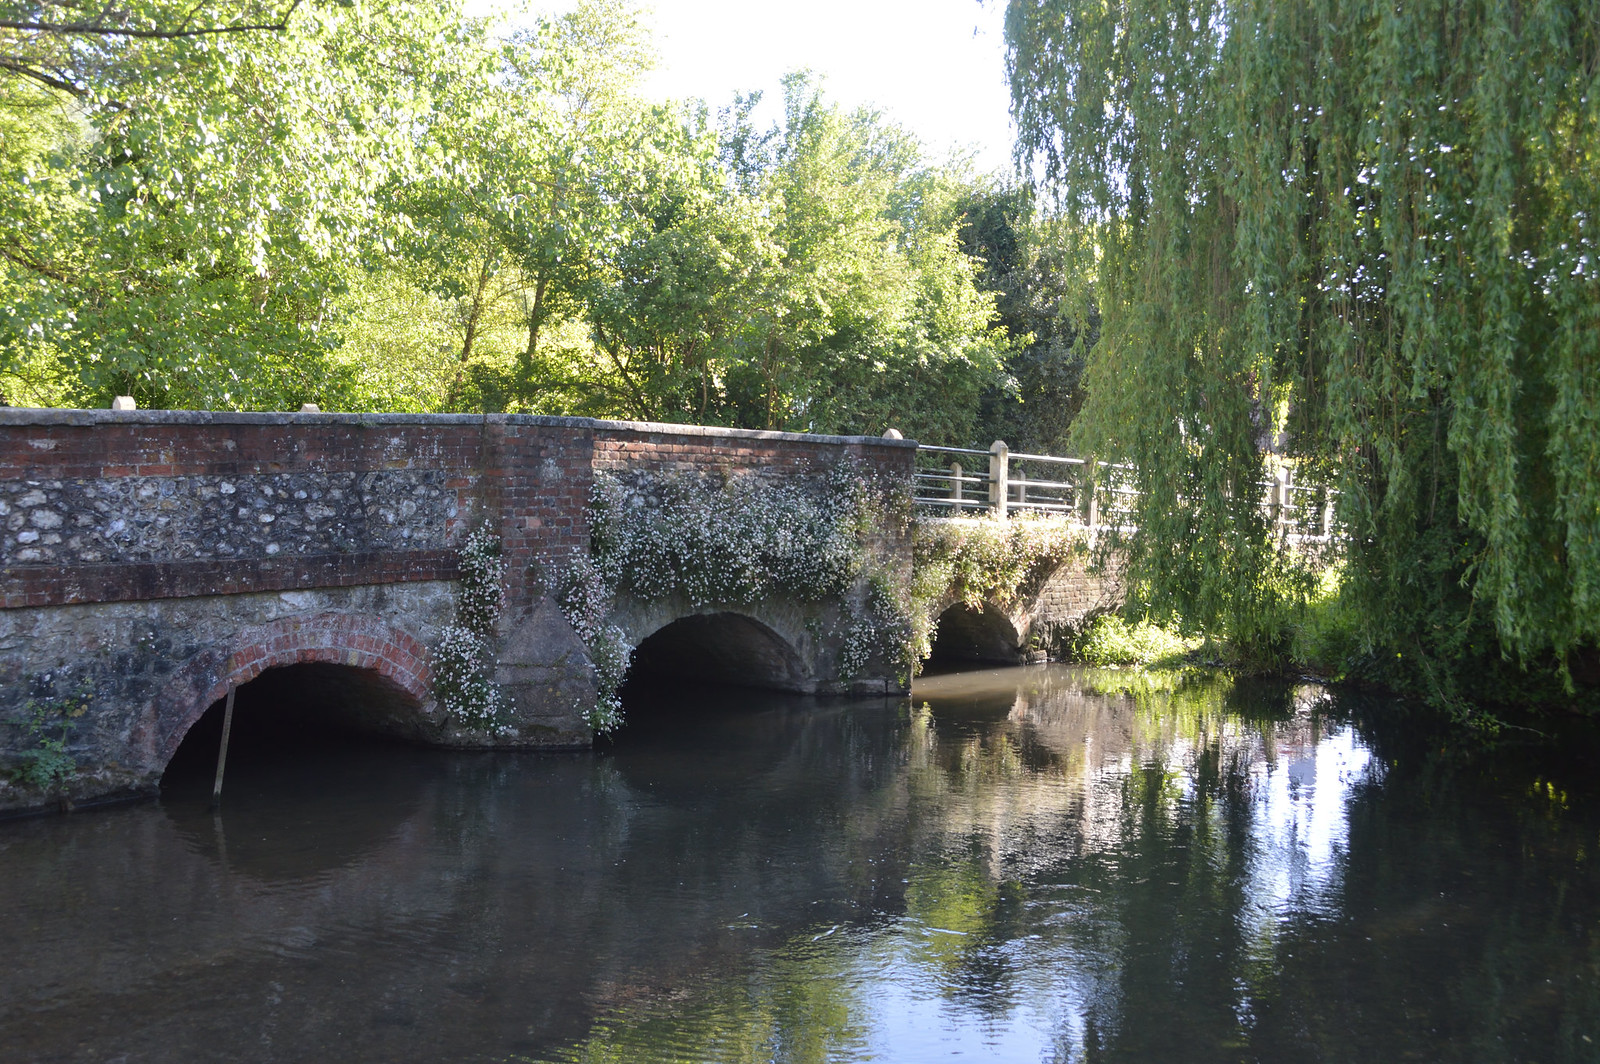 Shoreham Bridge over River Darent